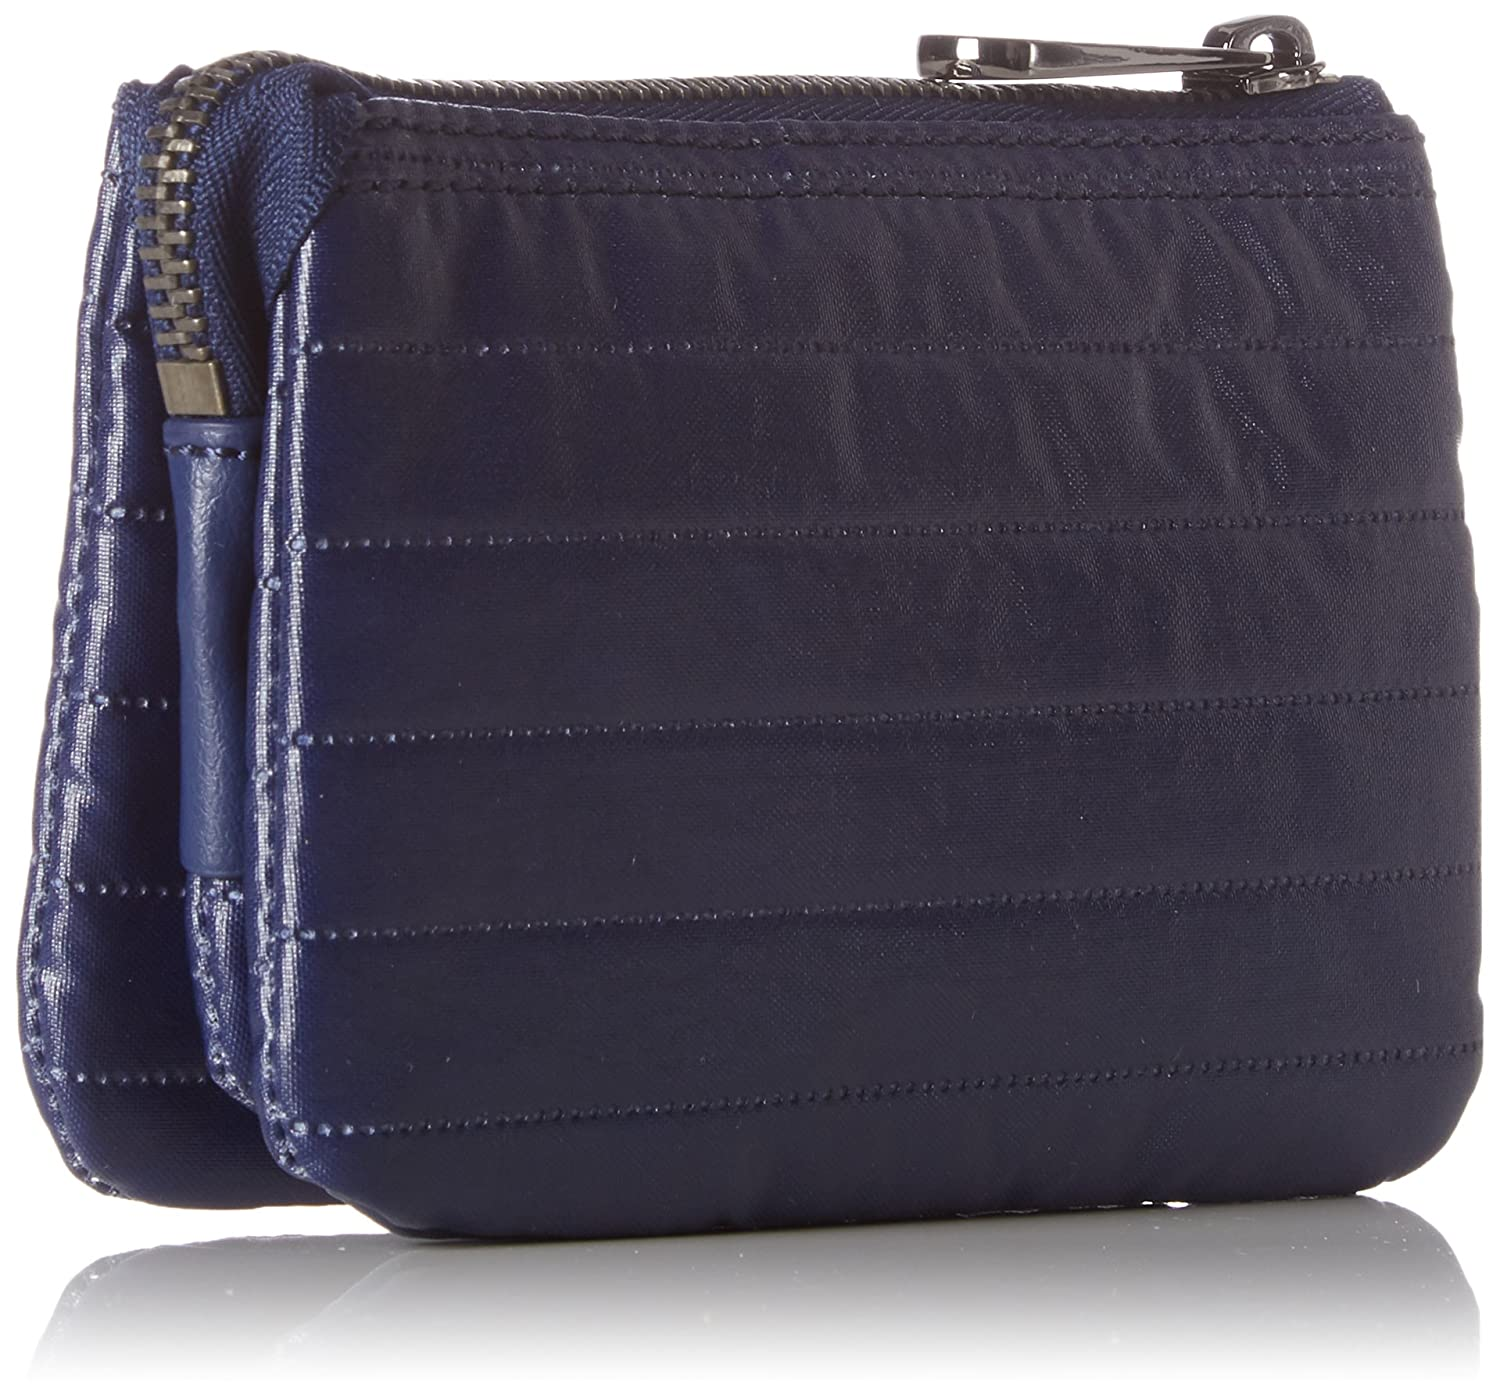 Amazon.com: Kipling Creativity S, Womens Purse, Blau (Shiny ...